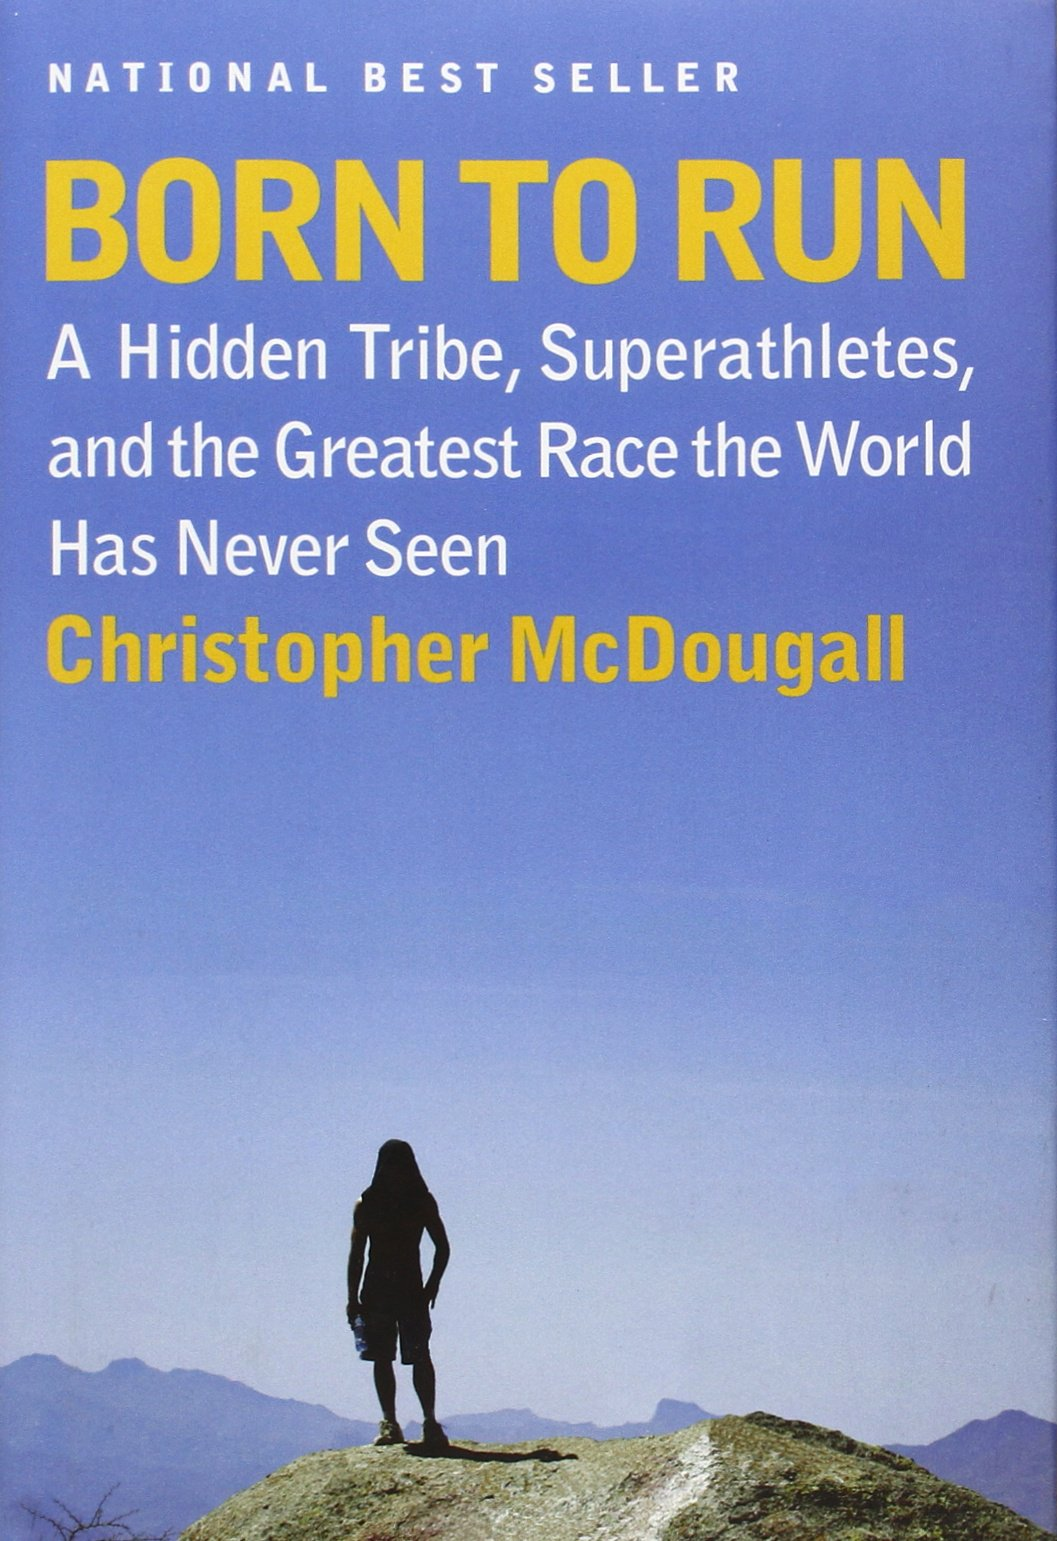 Born to Run: A Hidden Tribe, Superathletes, and the Greatest Race the World Has Never Seen free download